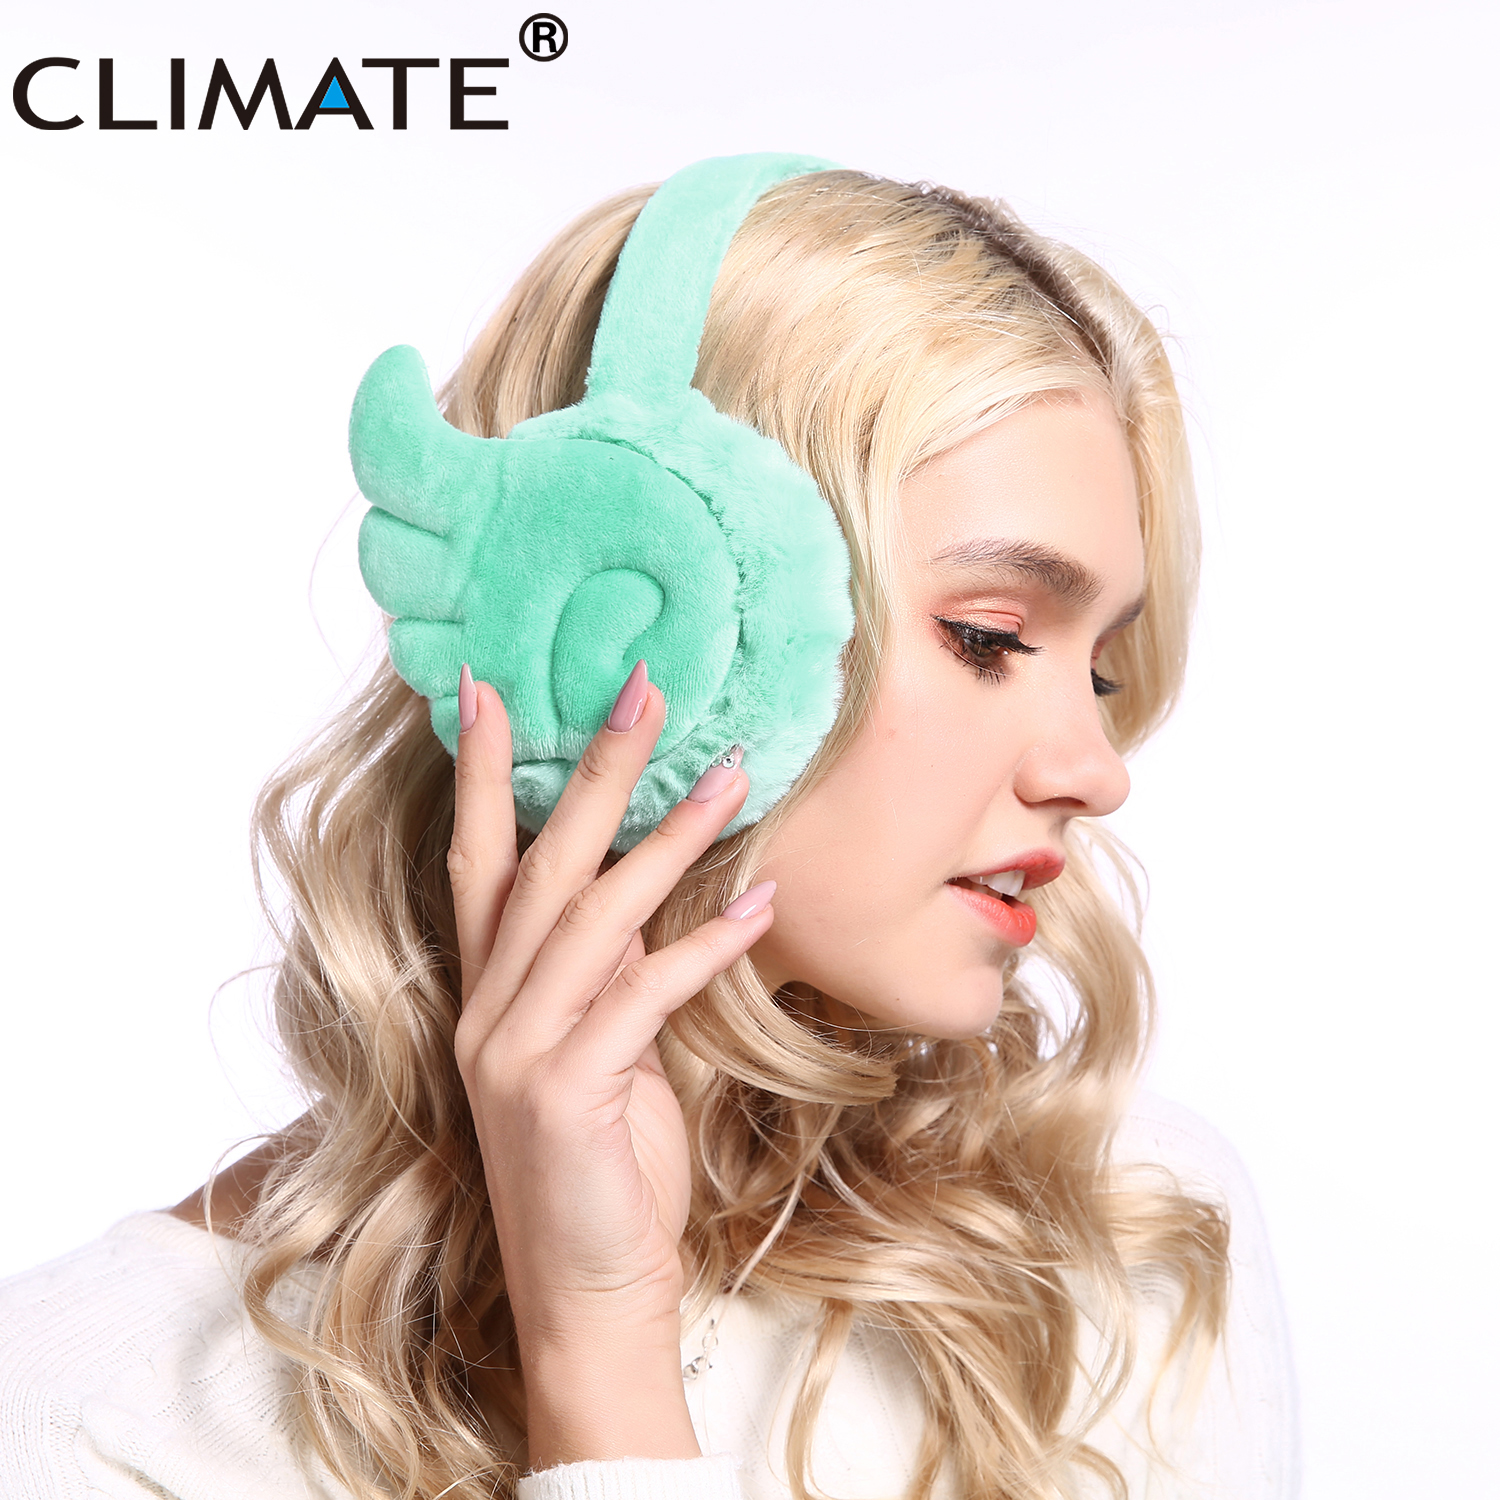 CLIMATE Women Cute Earmuffs Angle Ear Muffs Lovely Wing Ear Muff Warmer Lovely Warm Ear Muffs For Women Teenager Girls